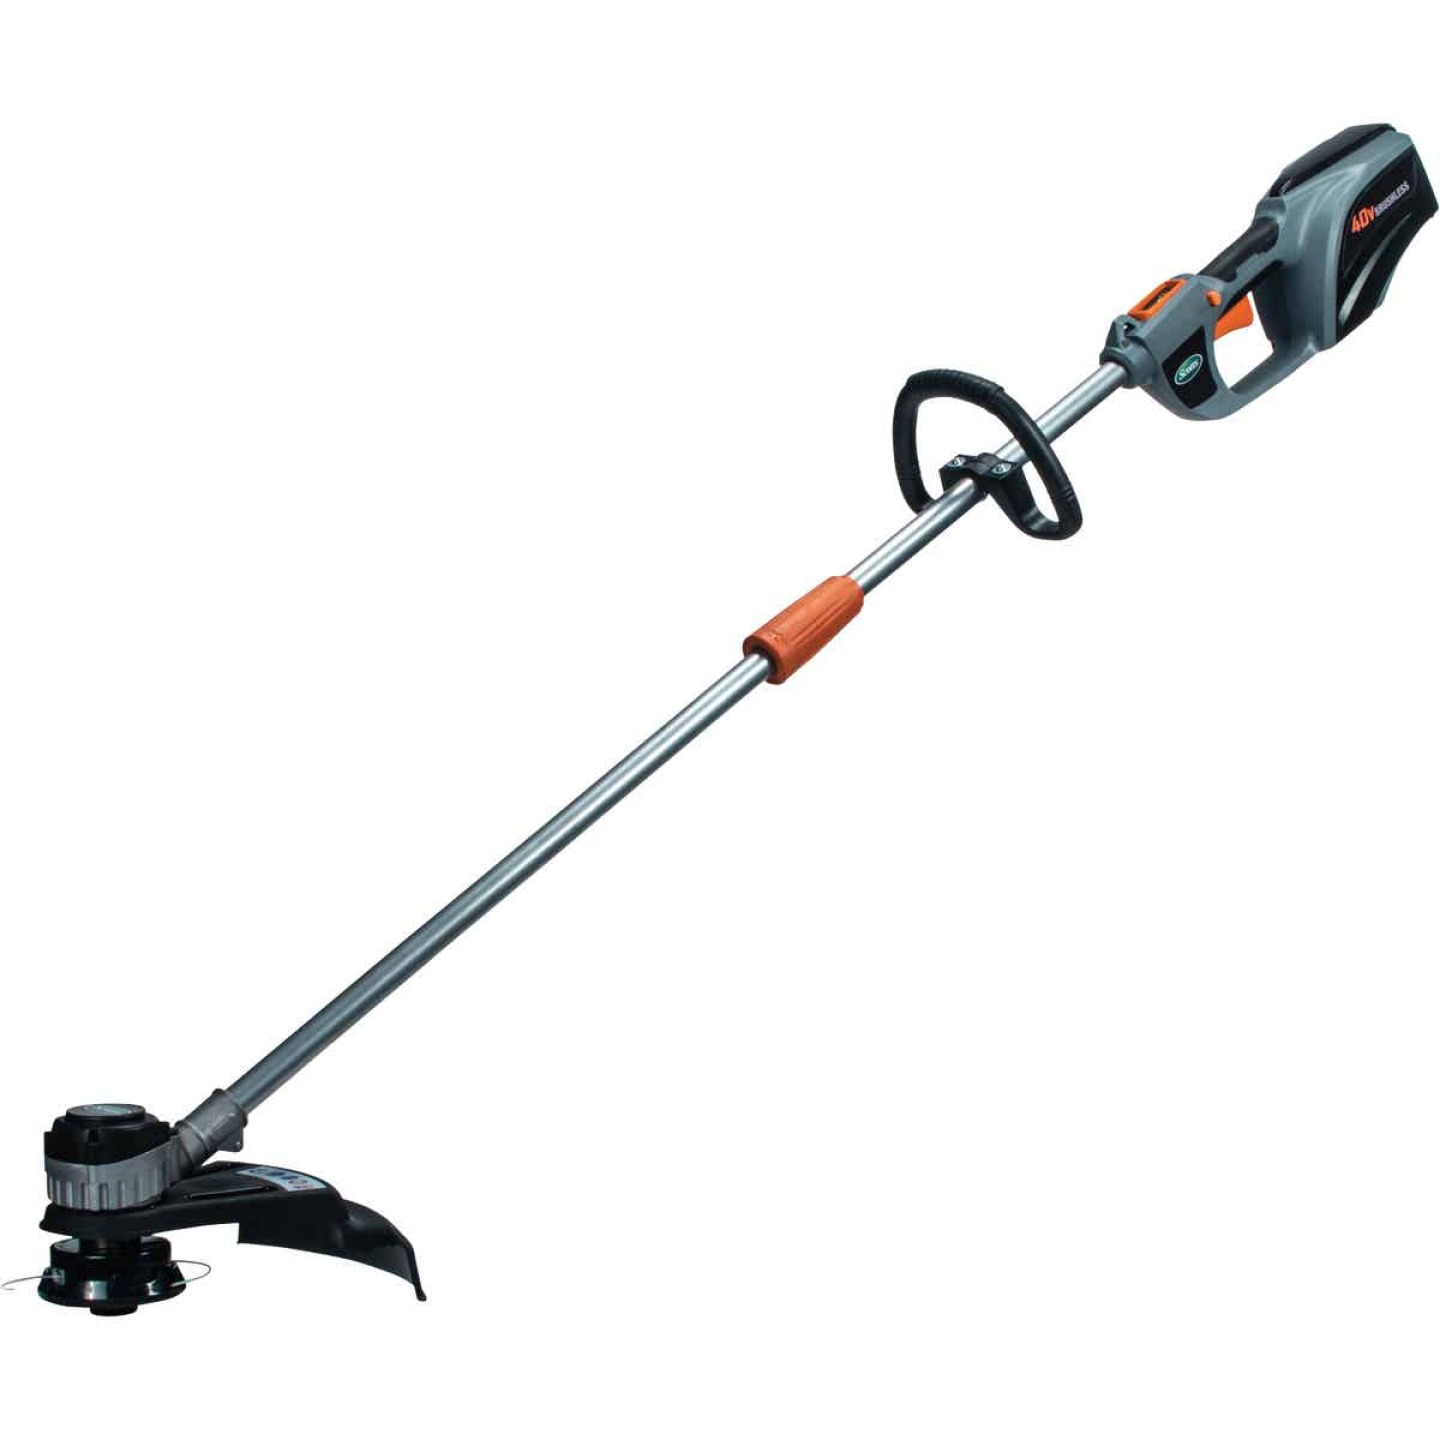 Scotts 15 In. 40 Volt Lithium Ion Cordless String Trimmer Image 1